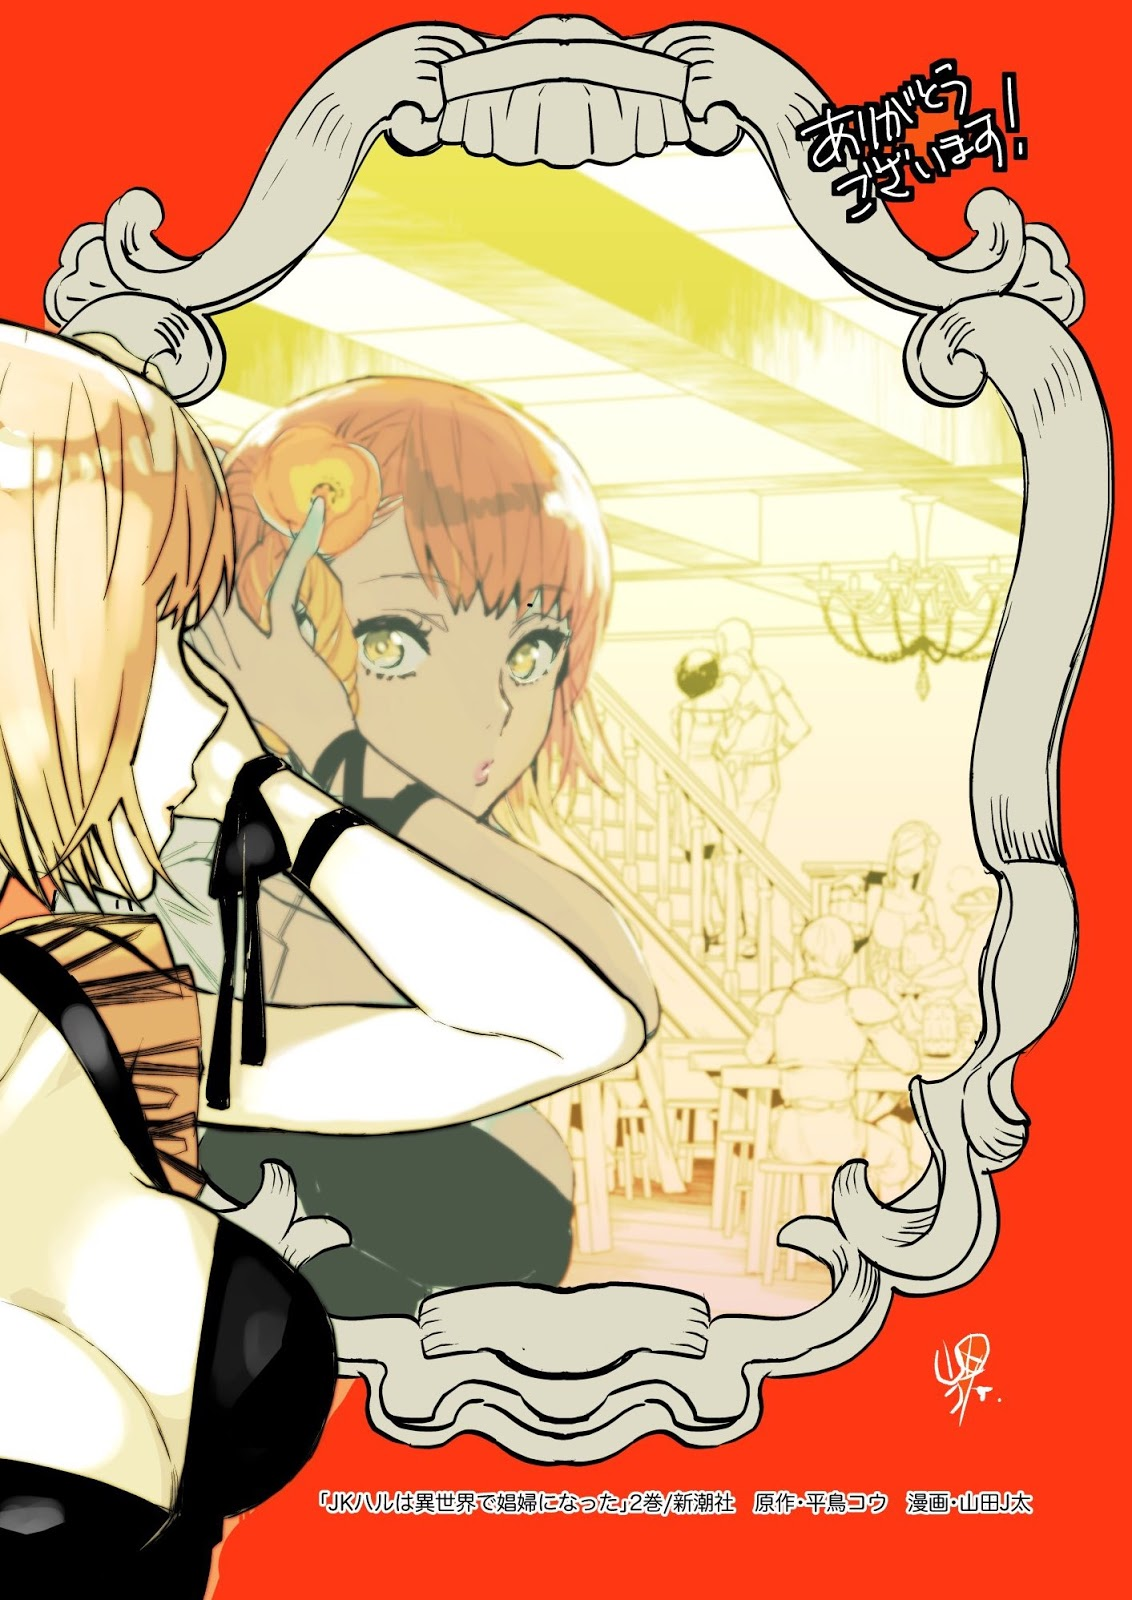 A blonde anime girl looking into a mirror showing a reflection of a tavern.